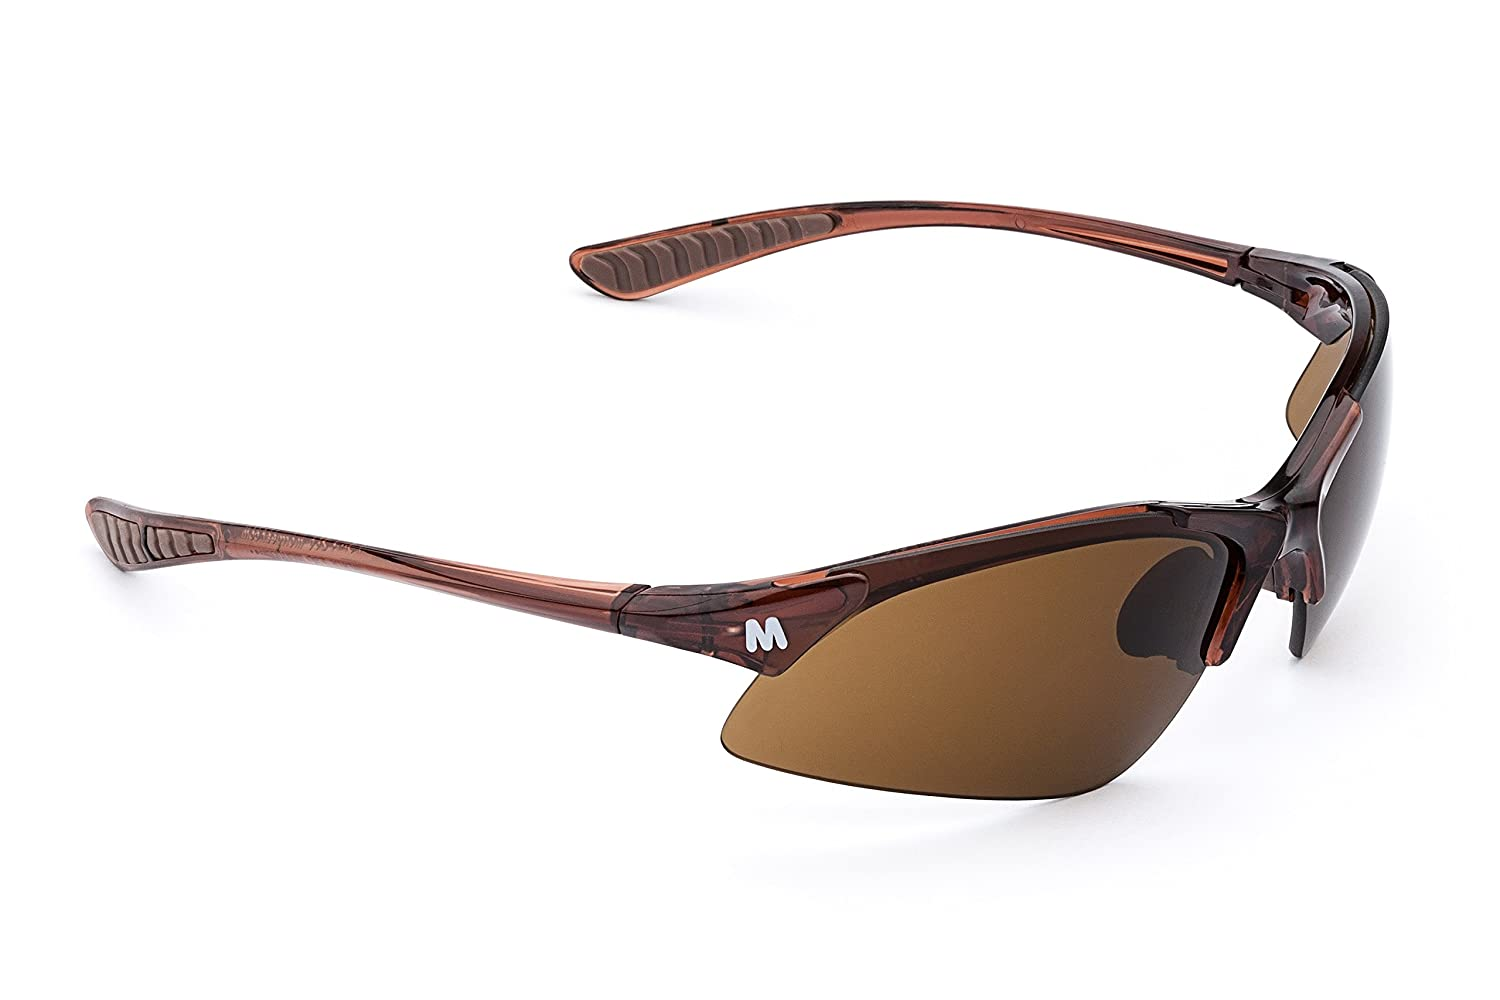 65ef6af5a17 Amazon.com   MORR MOZARRT Z50 Sport Sunglasses with Scratch ARMORR for  Mountain Biking